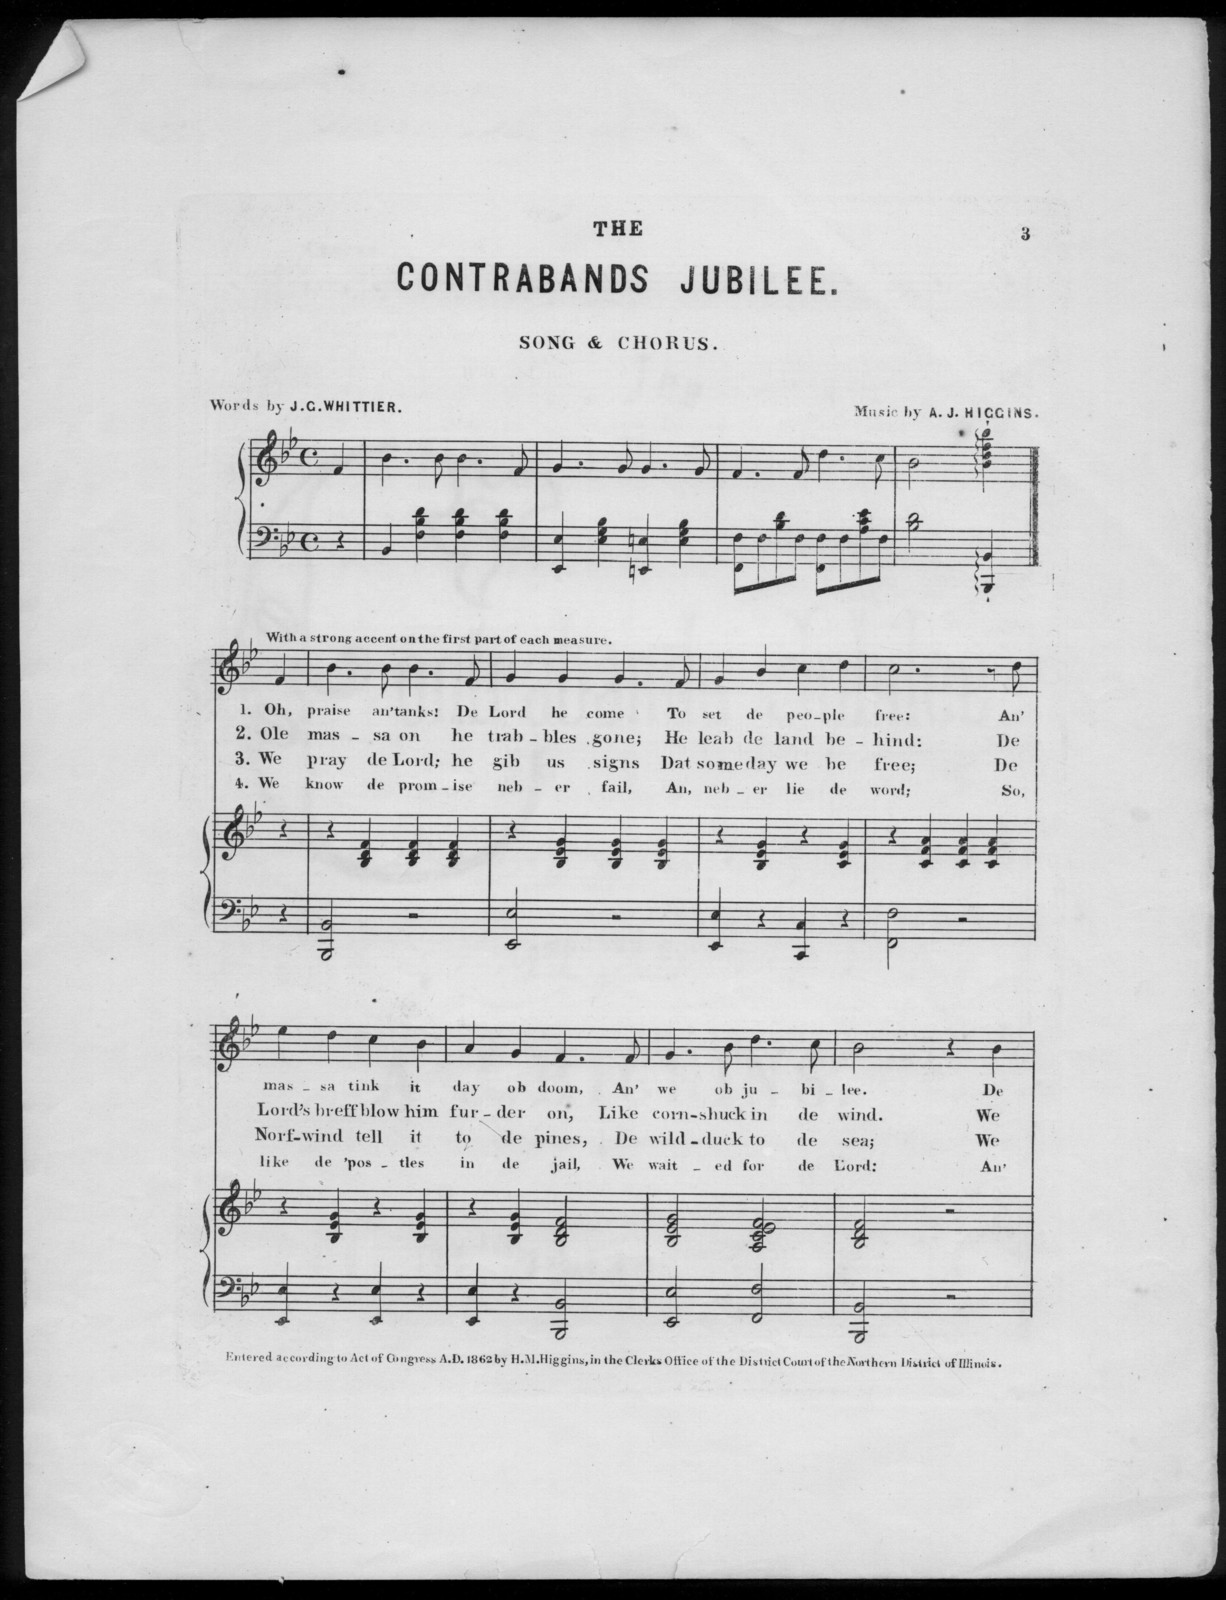 The  Contrabands jubilee